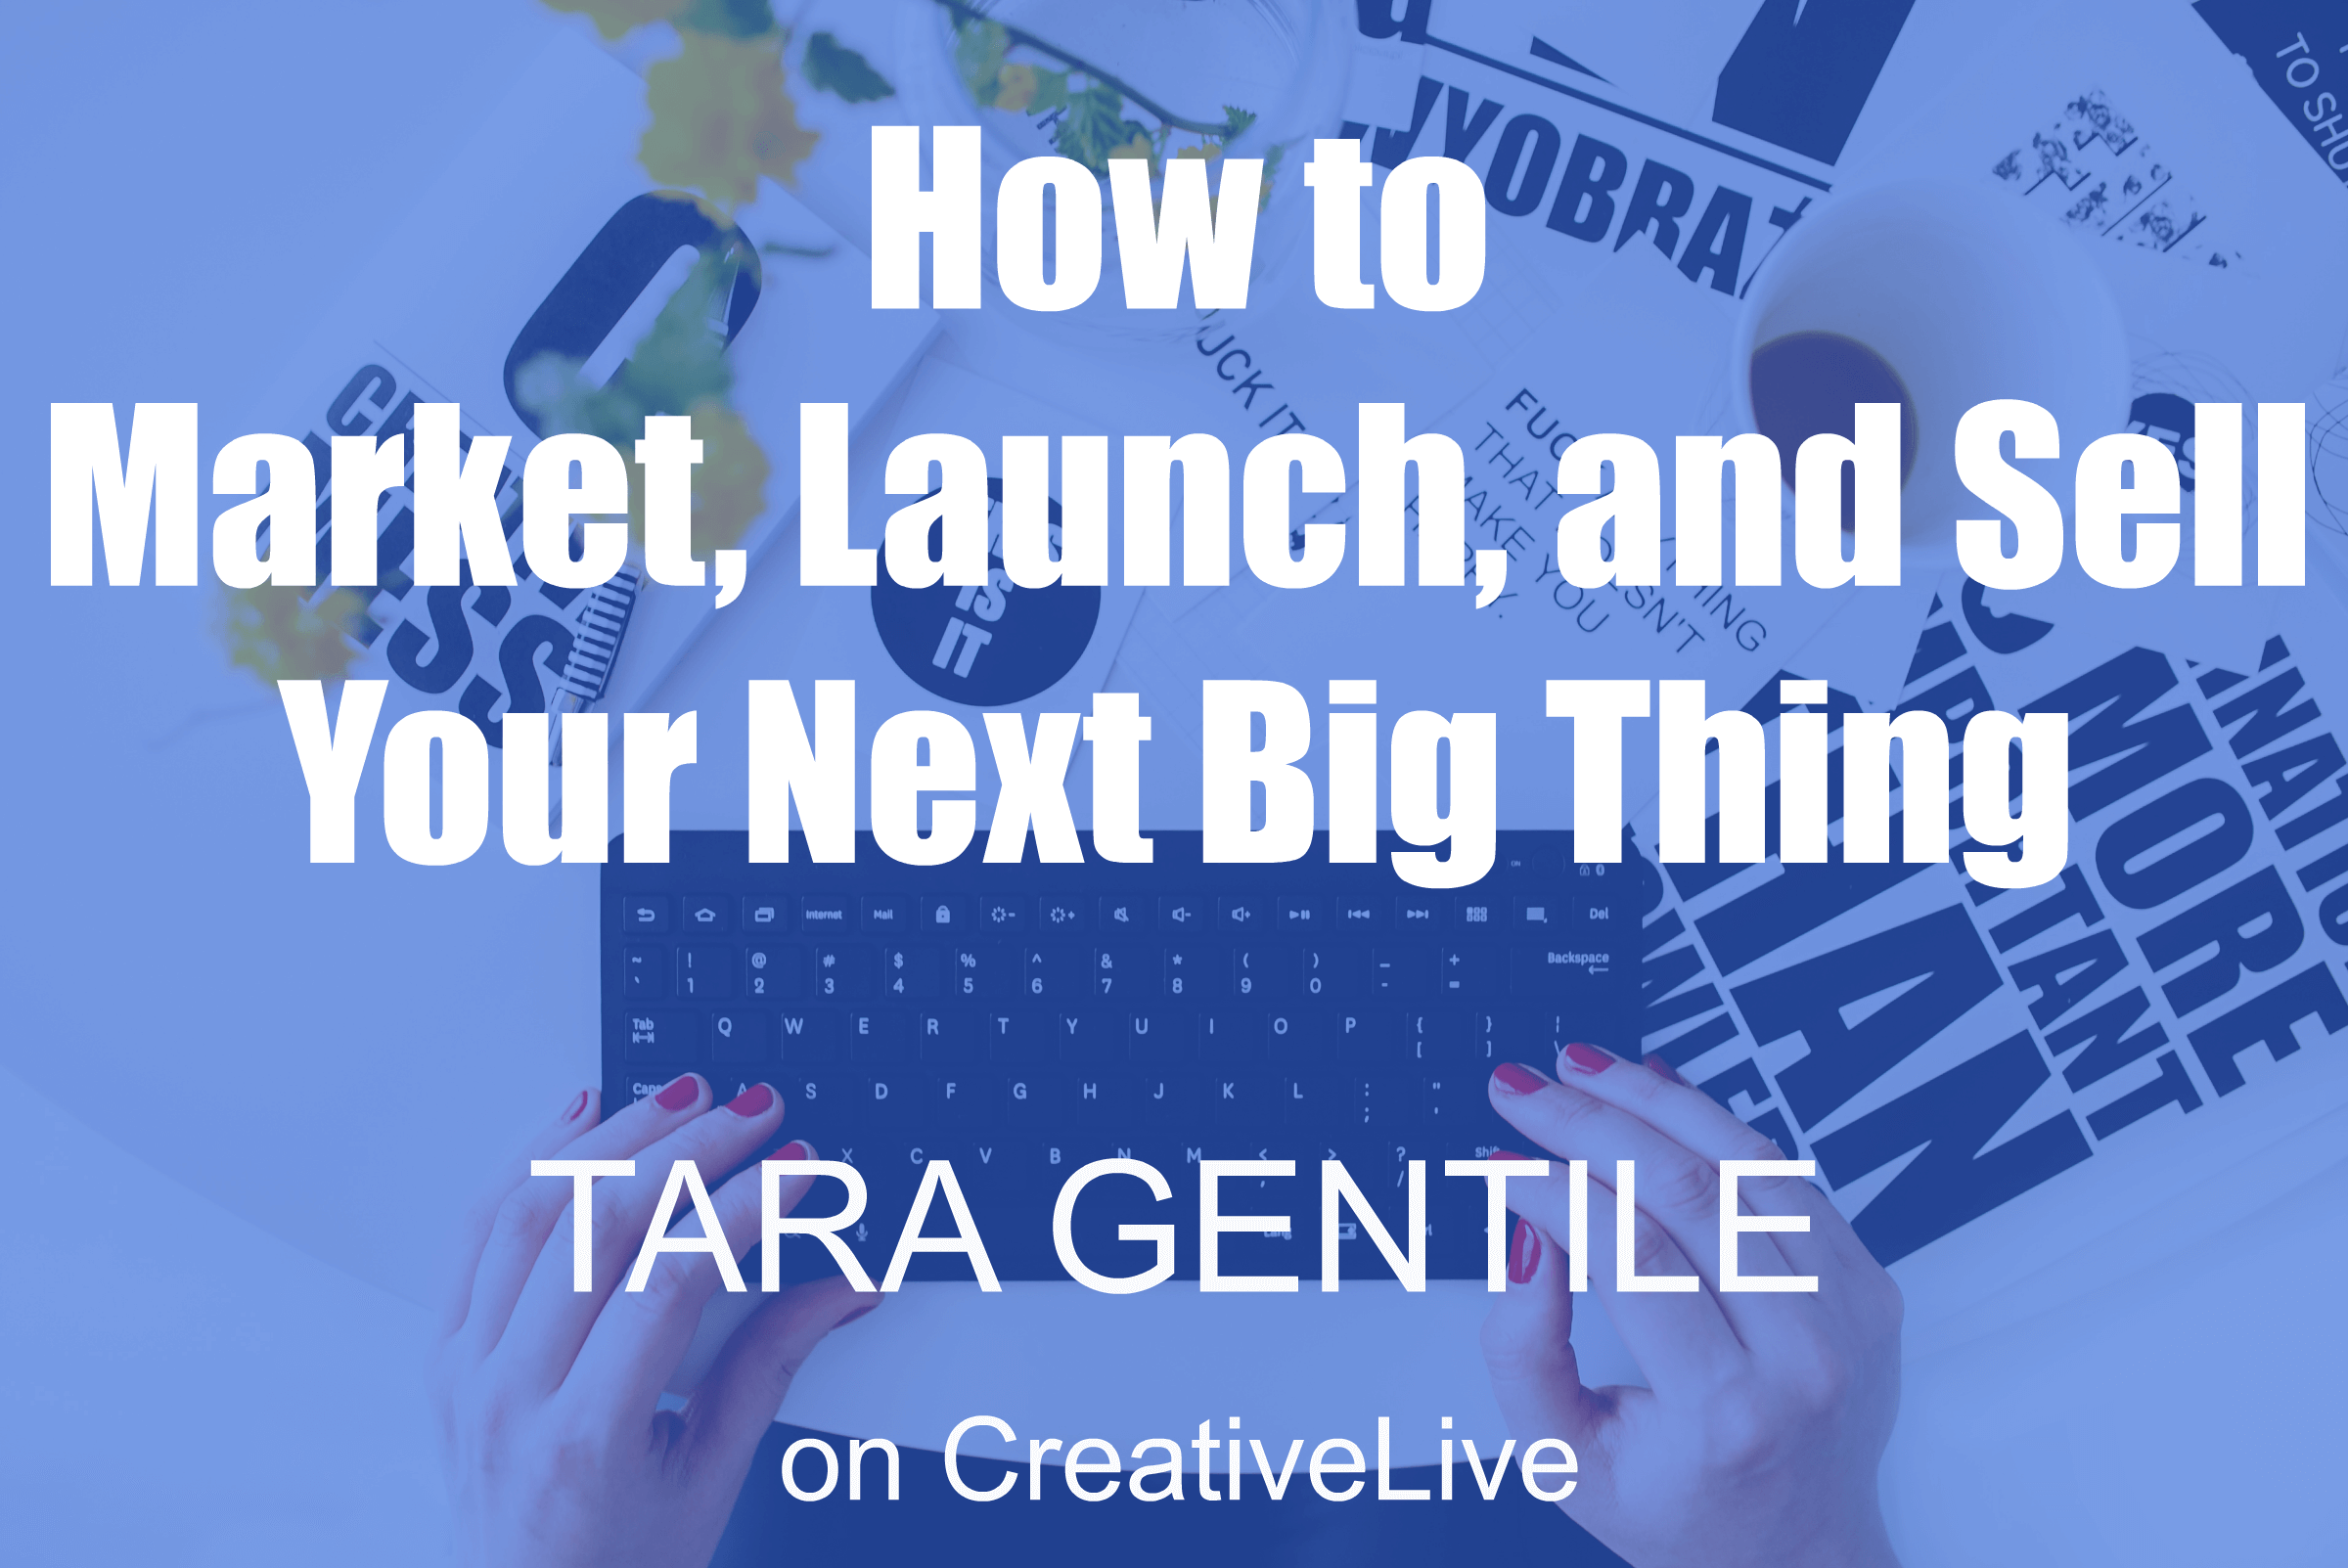 business developent, career minded women, CreativeLive, female entrepreneurs, get inspired, growing business, personal development, savvy women, Tara Gentile, unleash your creativity, Your Next Big Thing